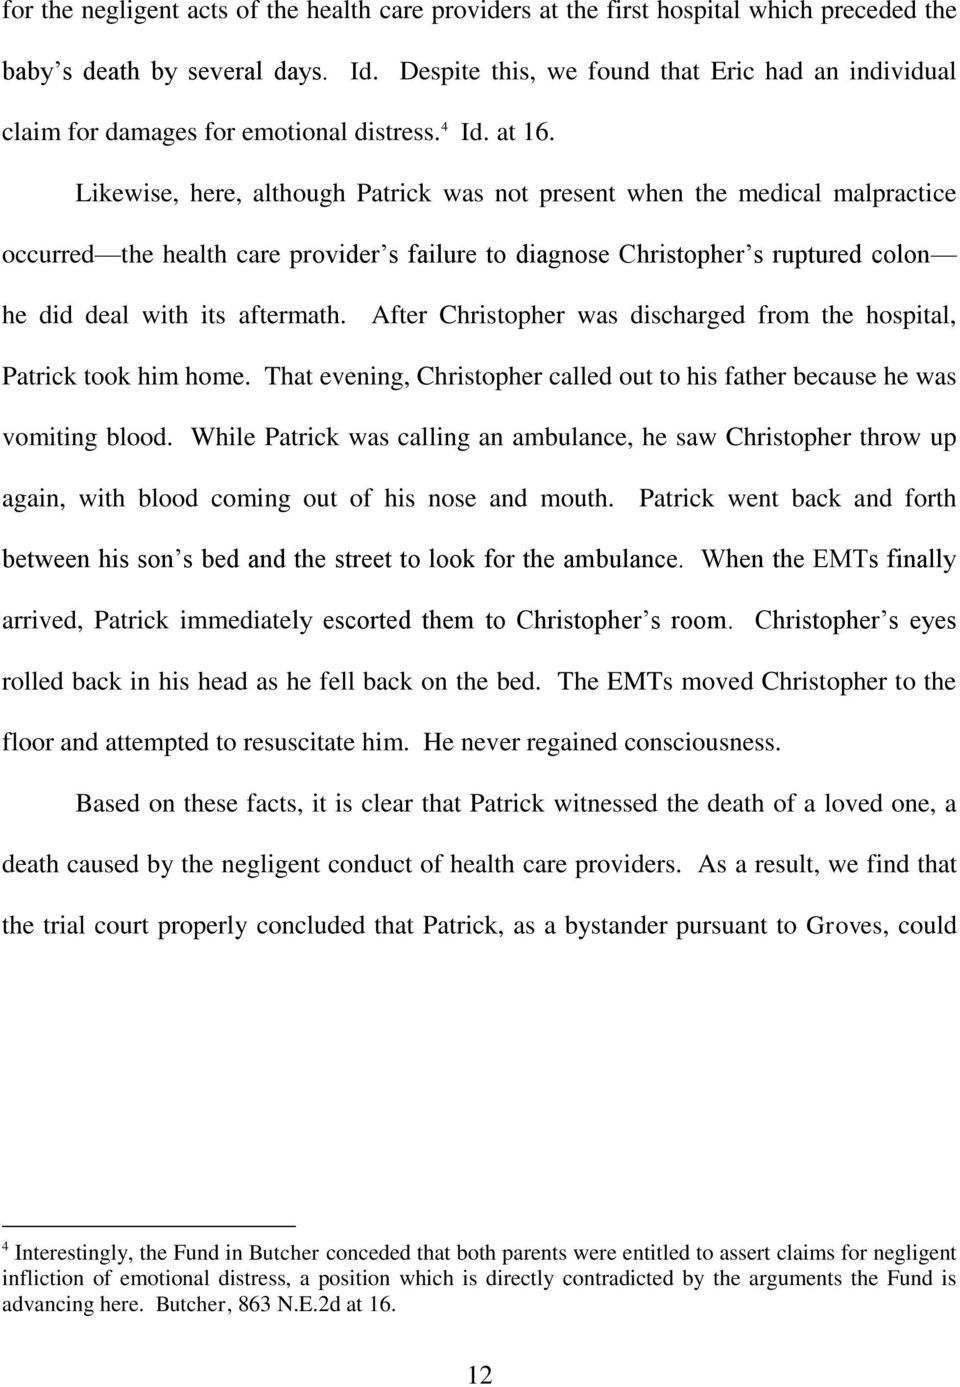 Likewise, here, although Patrick was not present when the medical malpractice occurred the health care provider s failure to diagnose Christopher s ruptured colon he did deal with its aftermath.